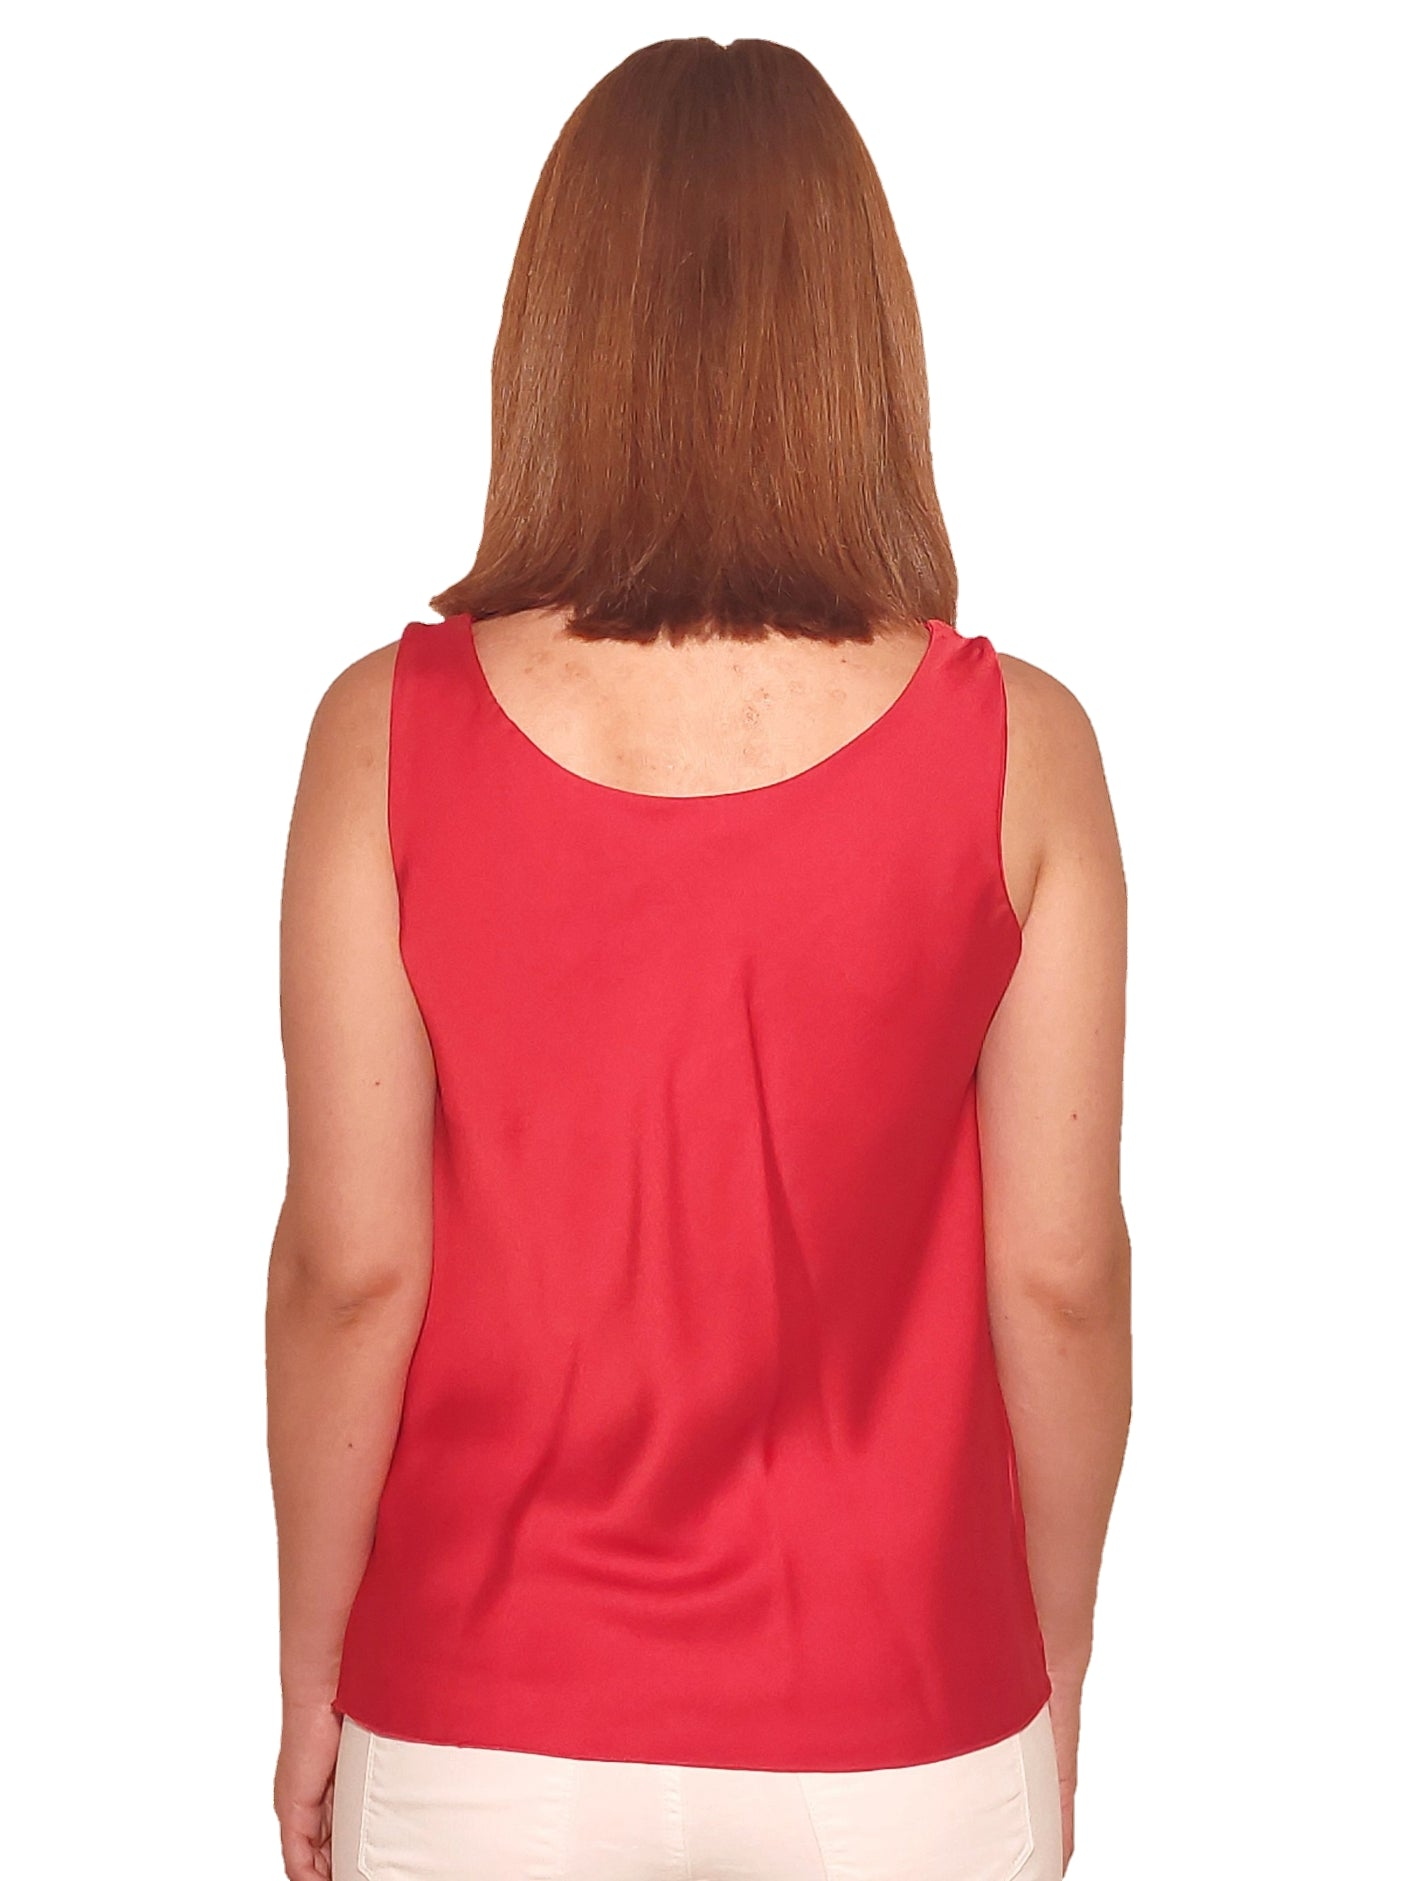 brunet-girl-wears-a-red-top-with-satin-touch-back